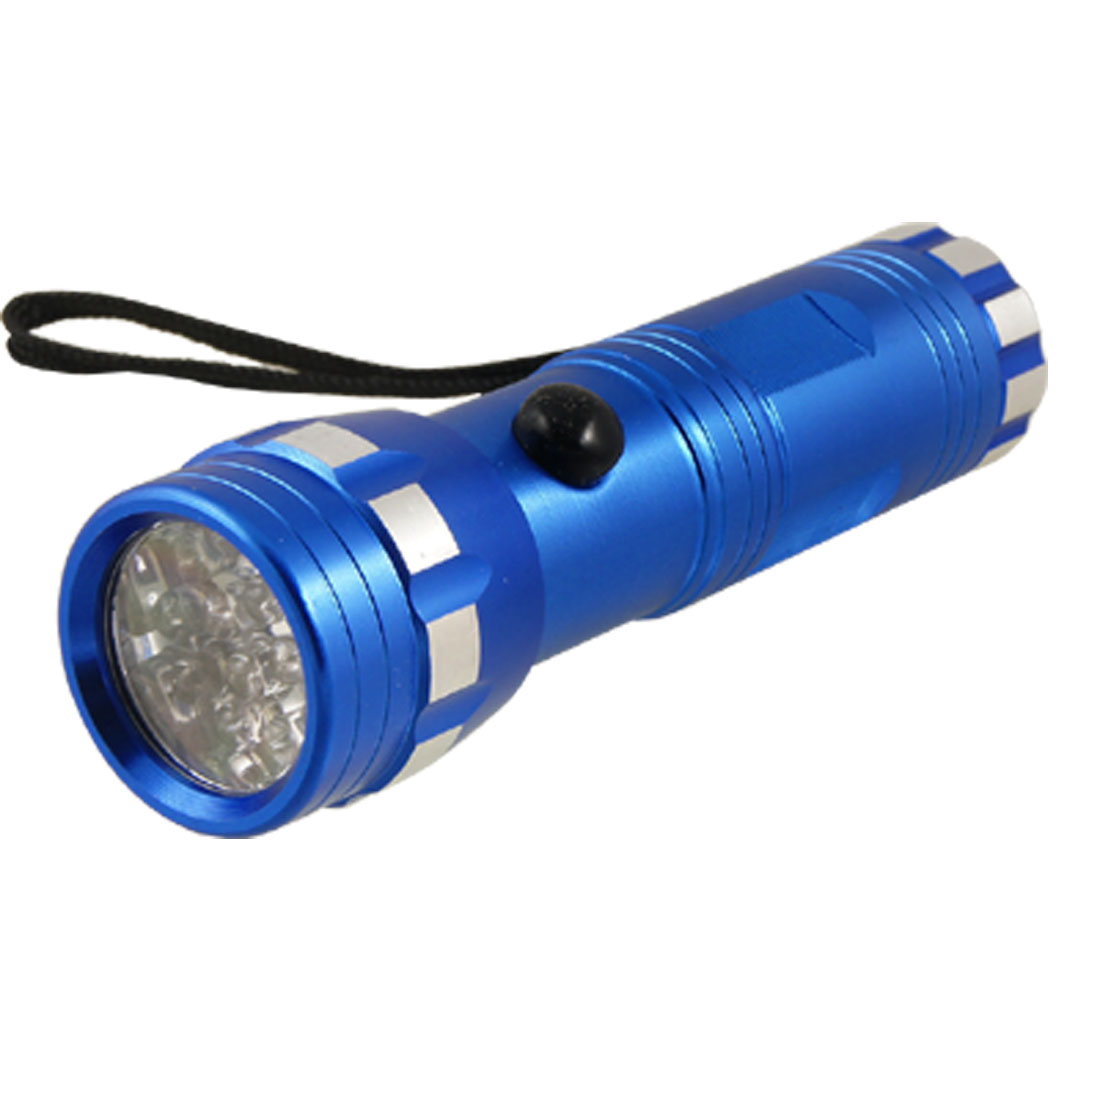 Royal Blue Aluminum Shell 14 LEDs Flashlight Torch for Travel Camping Fishing